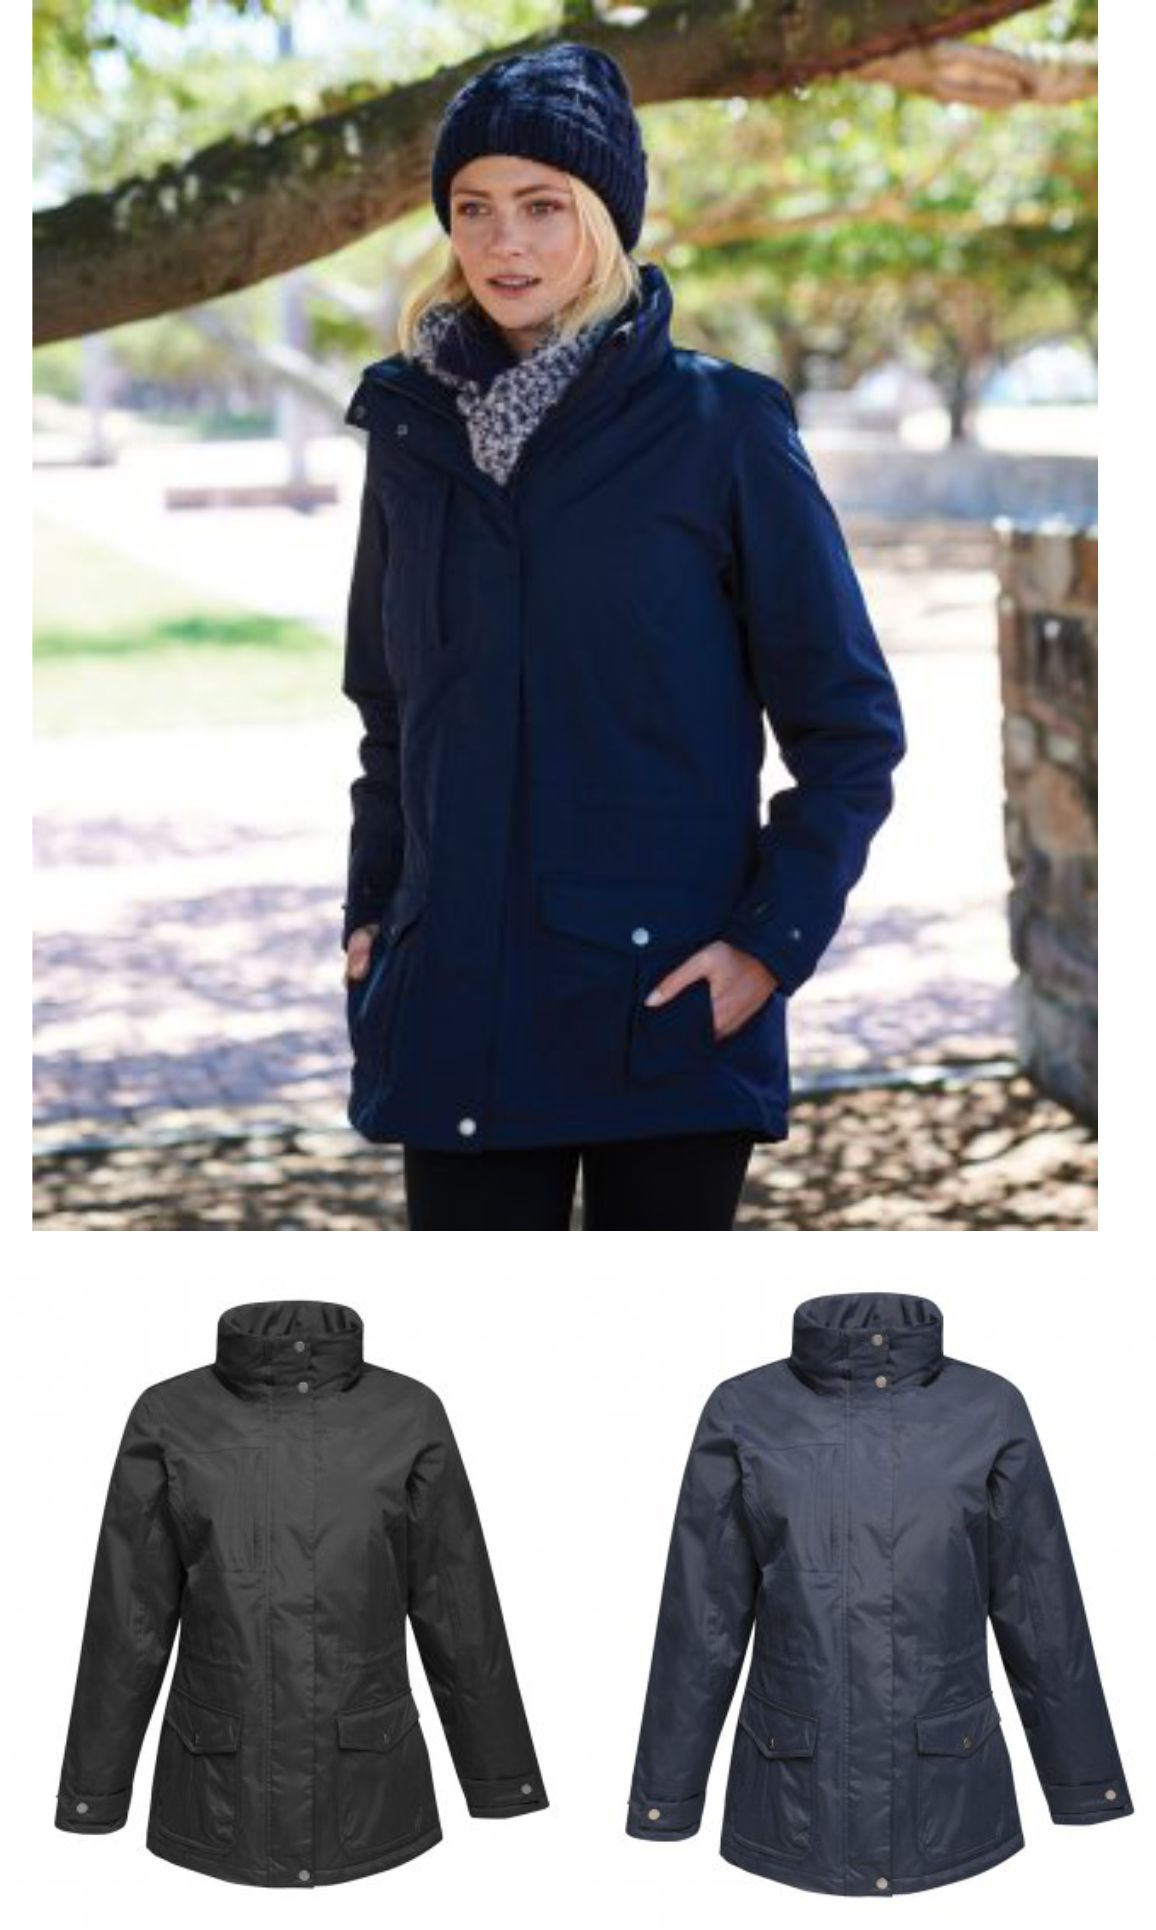 Regatta RG079 Ladies Darby III Waterproof Insulated Jacket